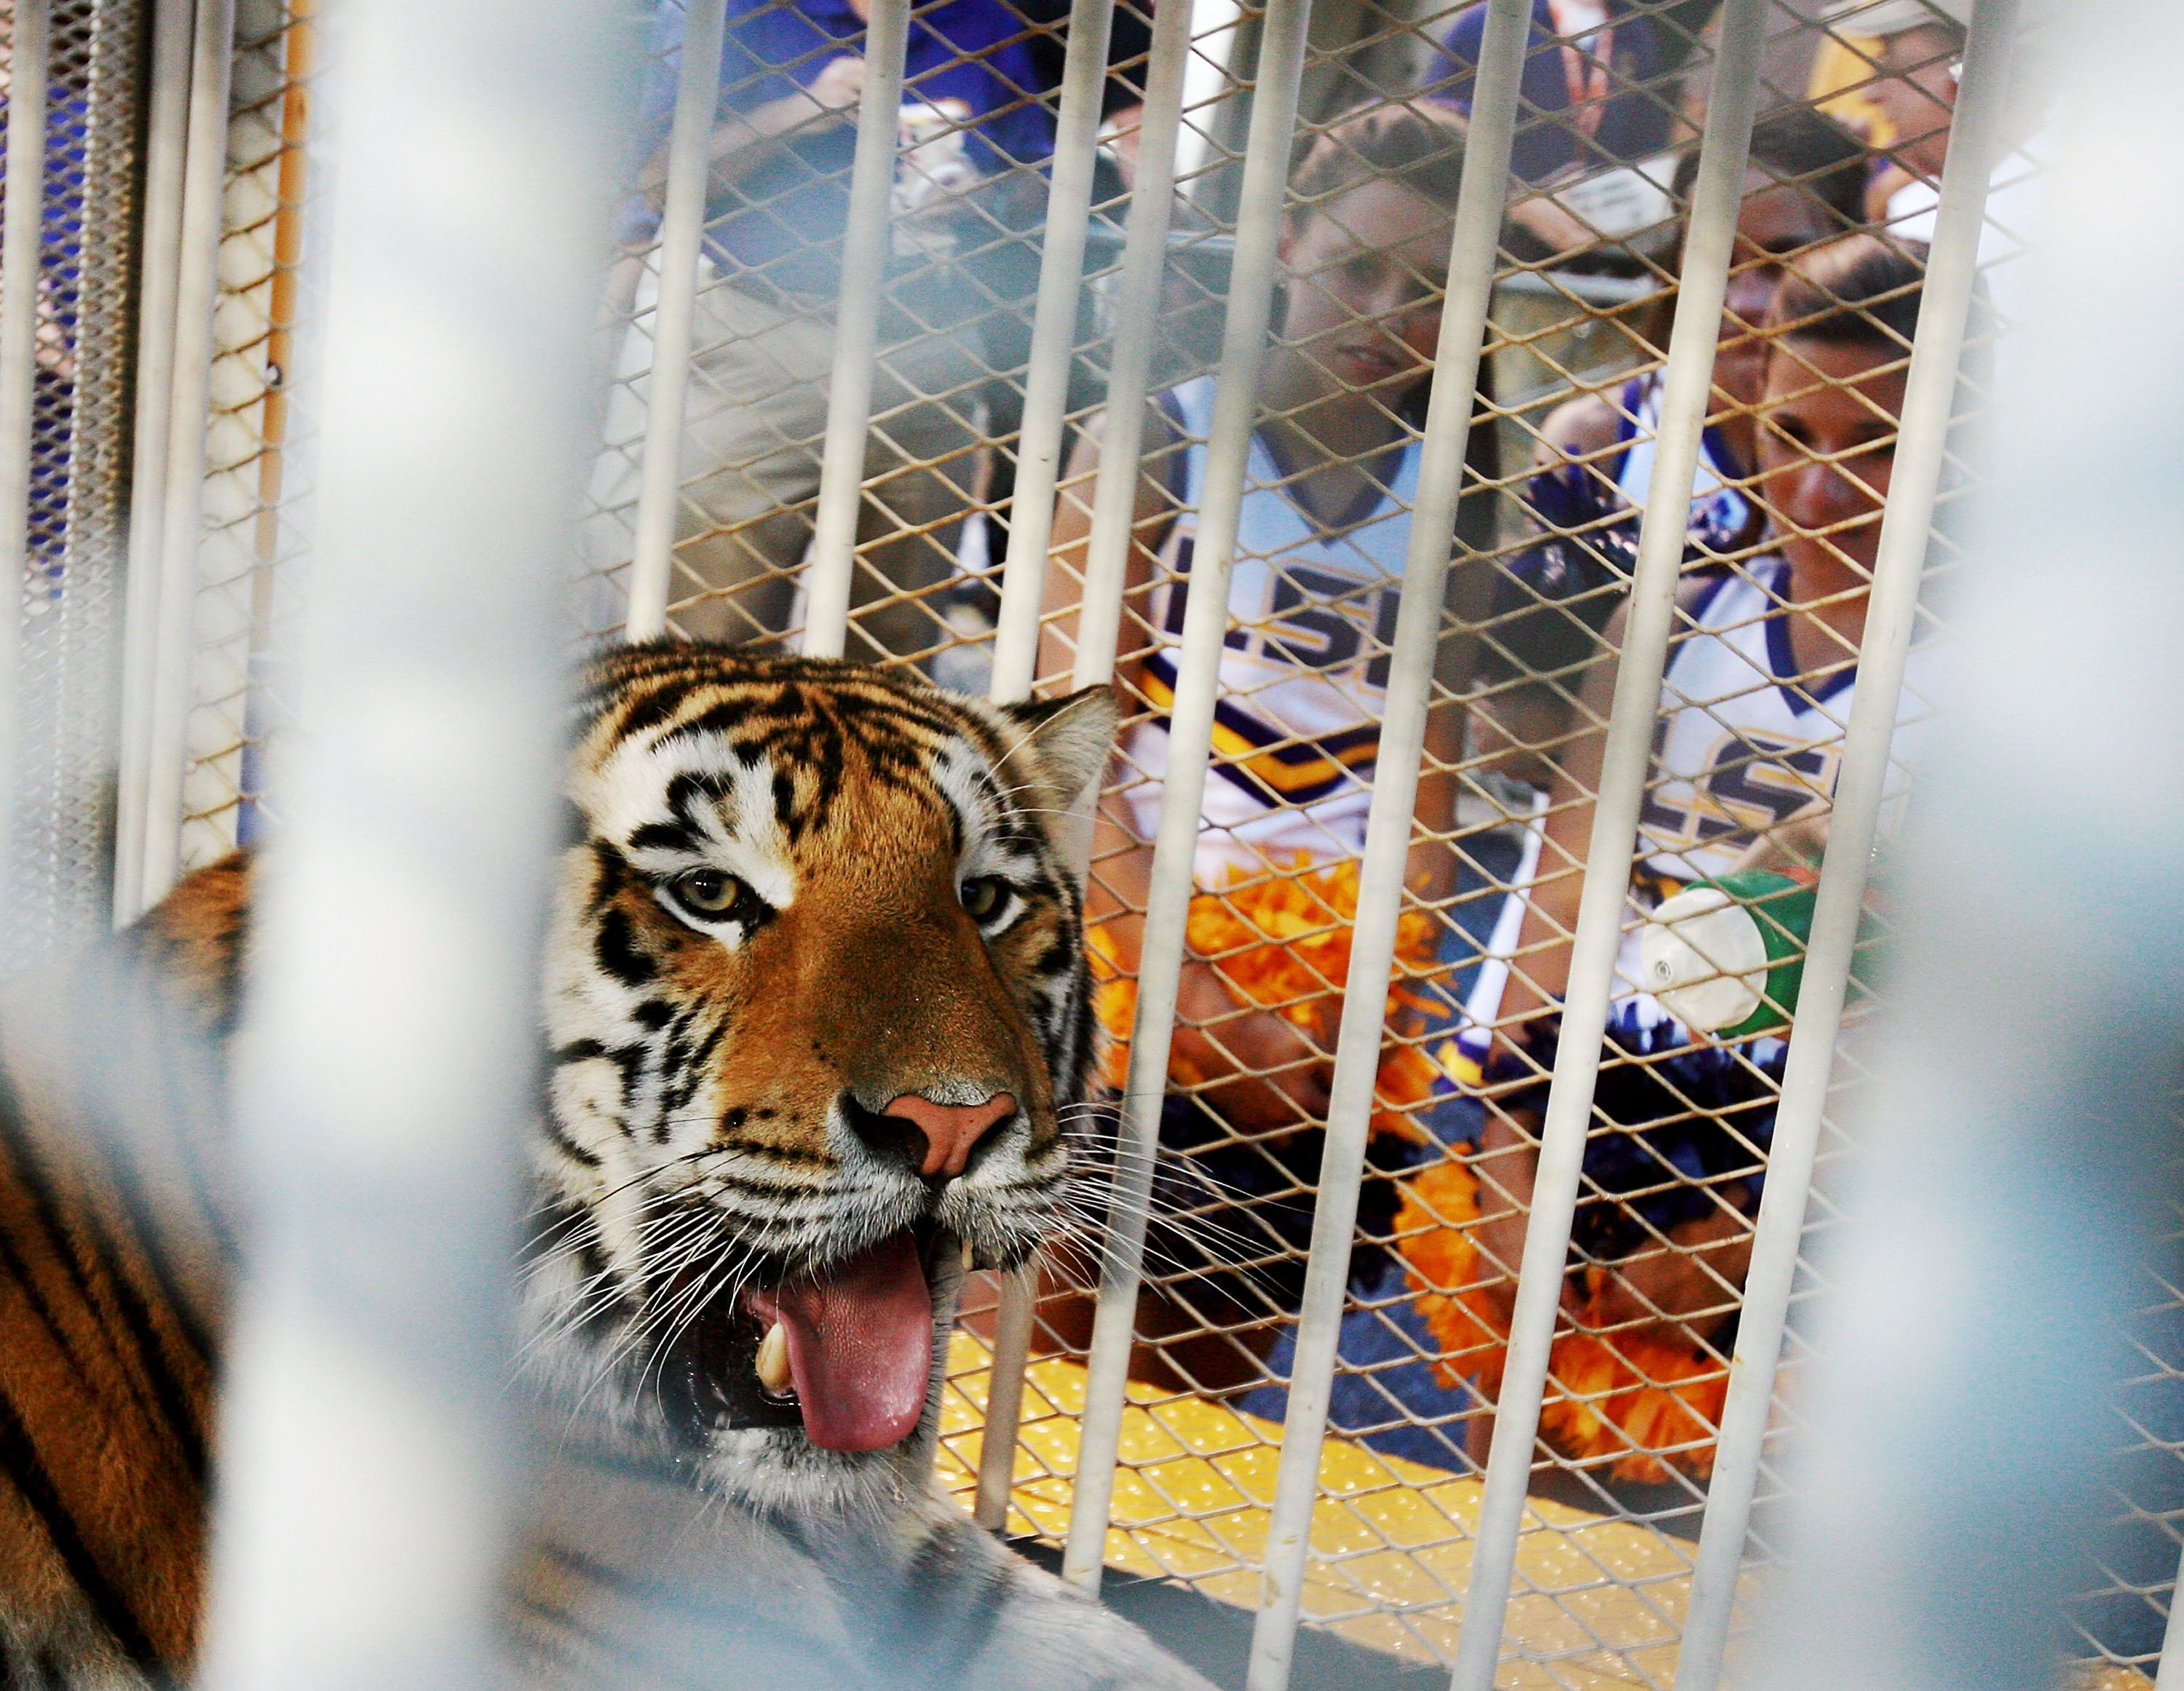 LSU mascot Mike VI, a Bengal/Siberian mixed tiger, is displayed on the field before the Florida Gators take on the LSU Tigers at Tiger Stadium on October 6, 2007 in Baton Rouge, Louisiana.